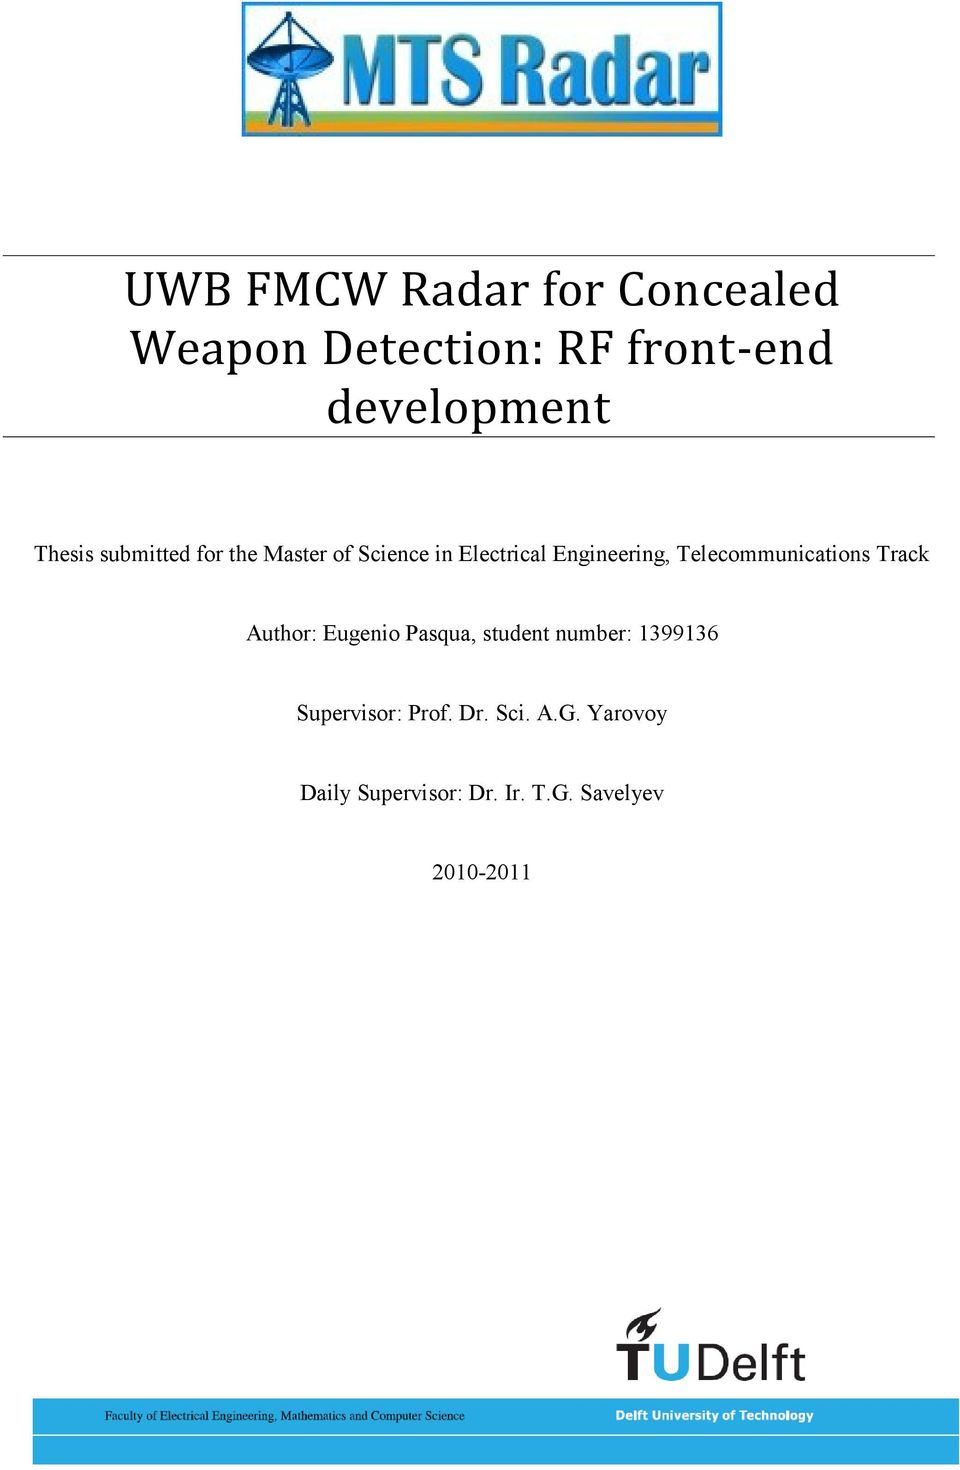 UWB FMCW Radar for Concealed Weapon Detection: RF front-end